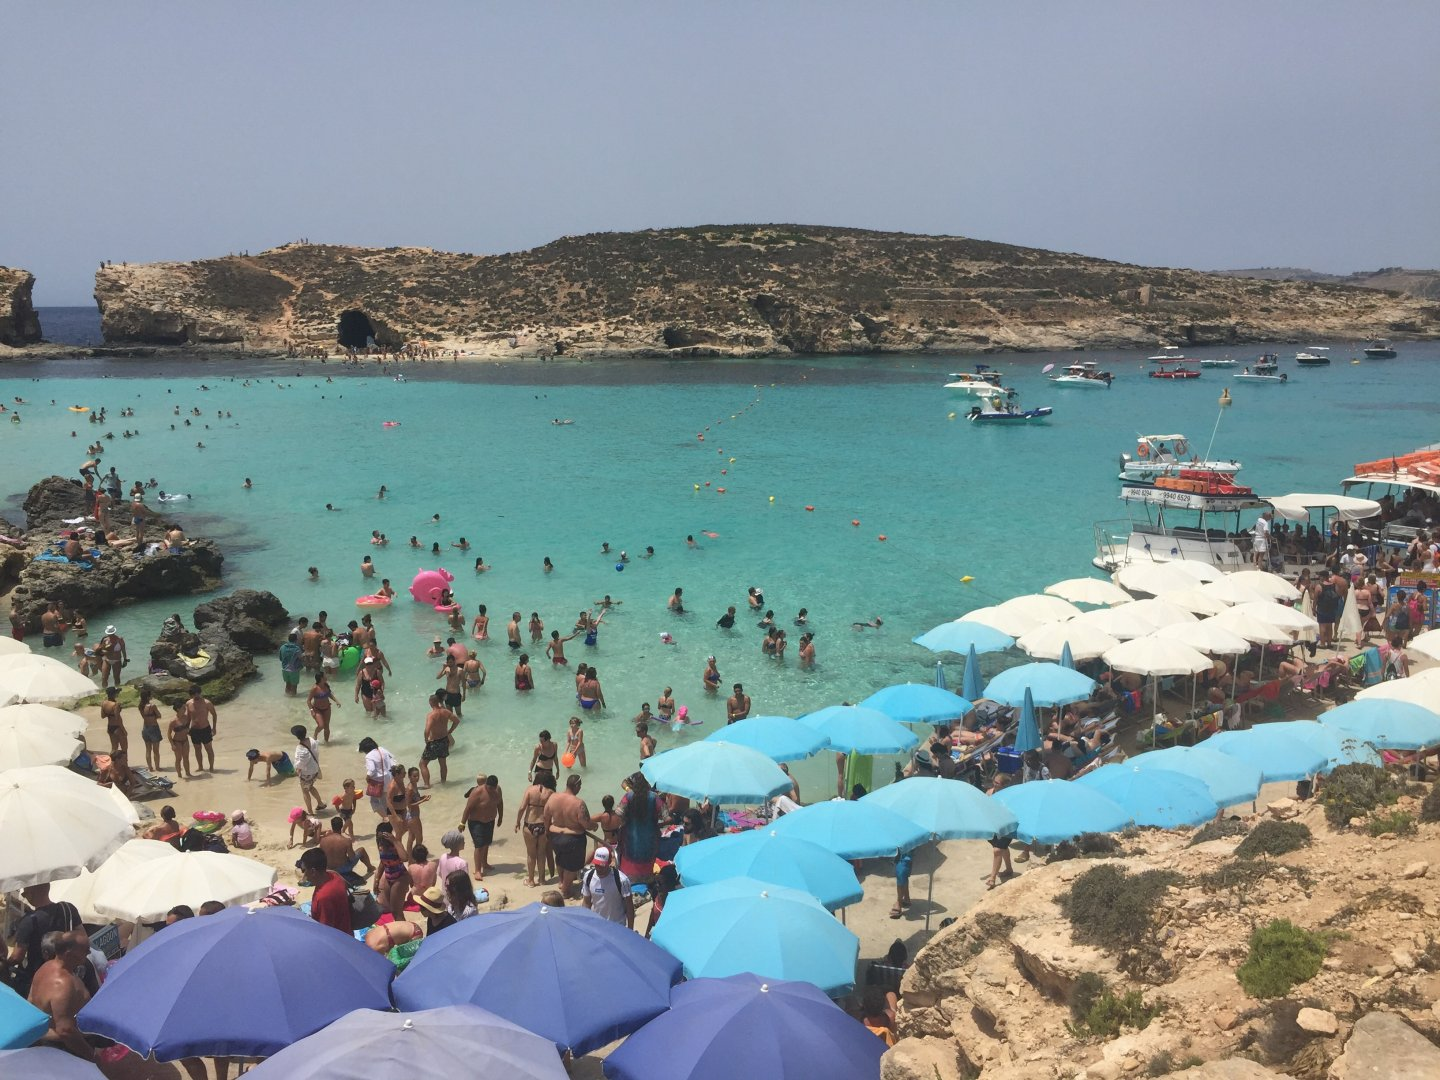 Malta Travel Diaries: Comino Lagoons - Blue and Crystal. This is the reality of the Blue Lagoon!